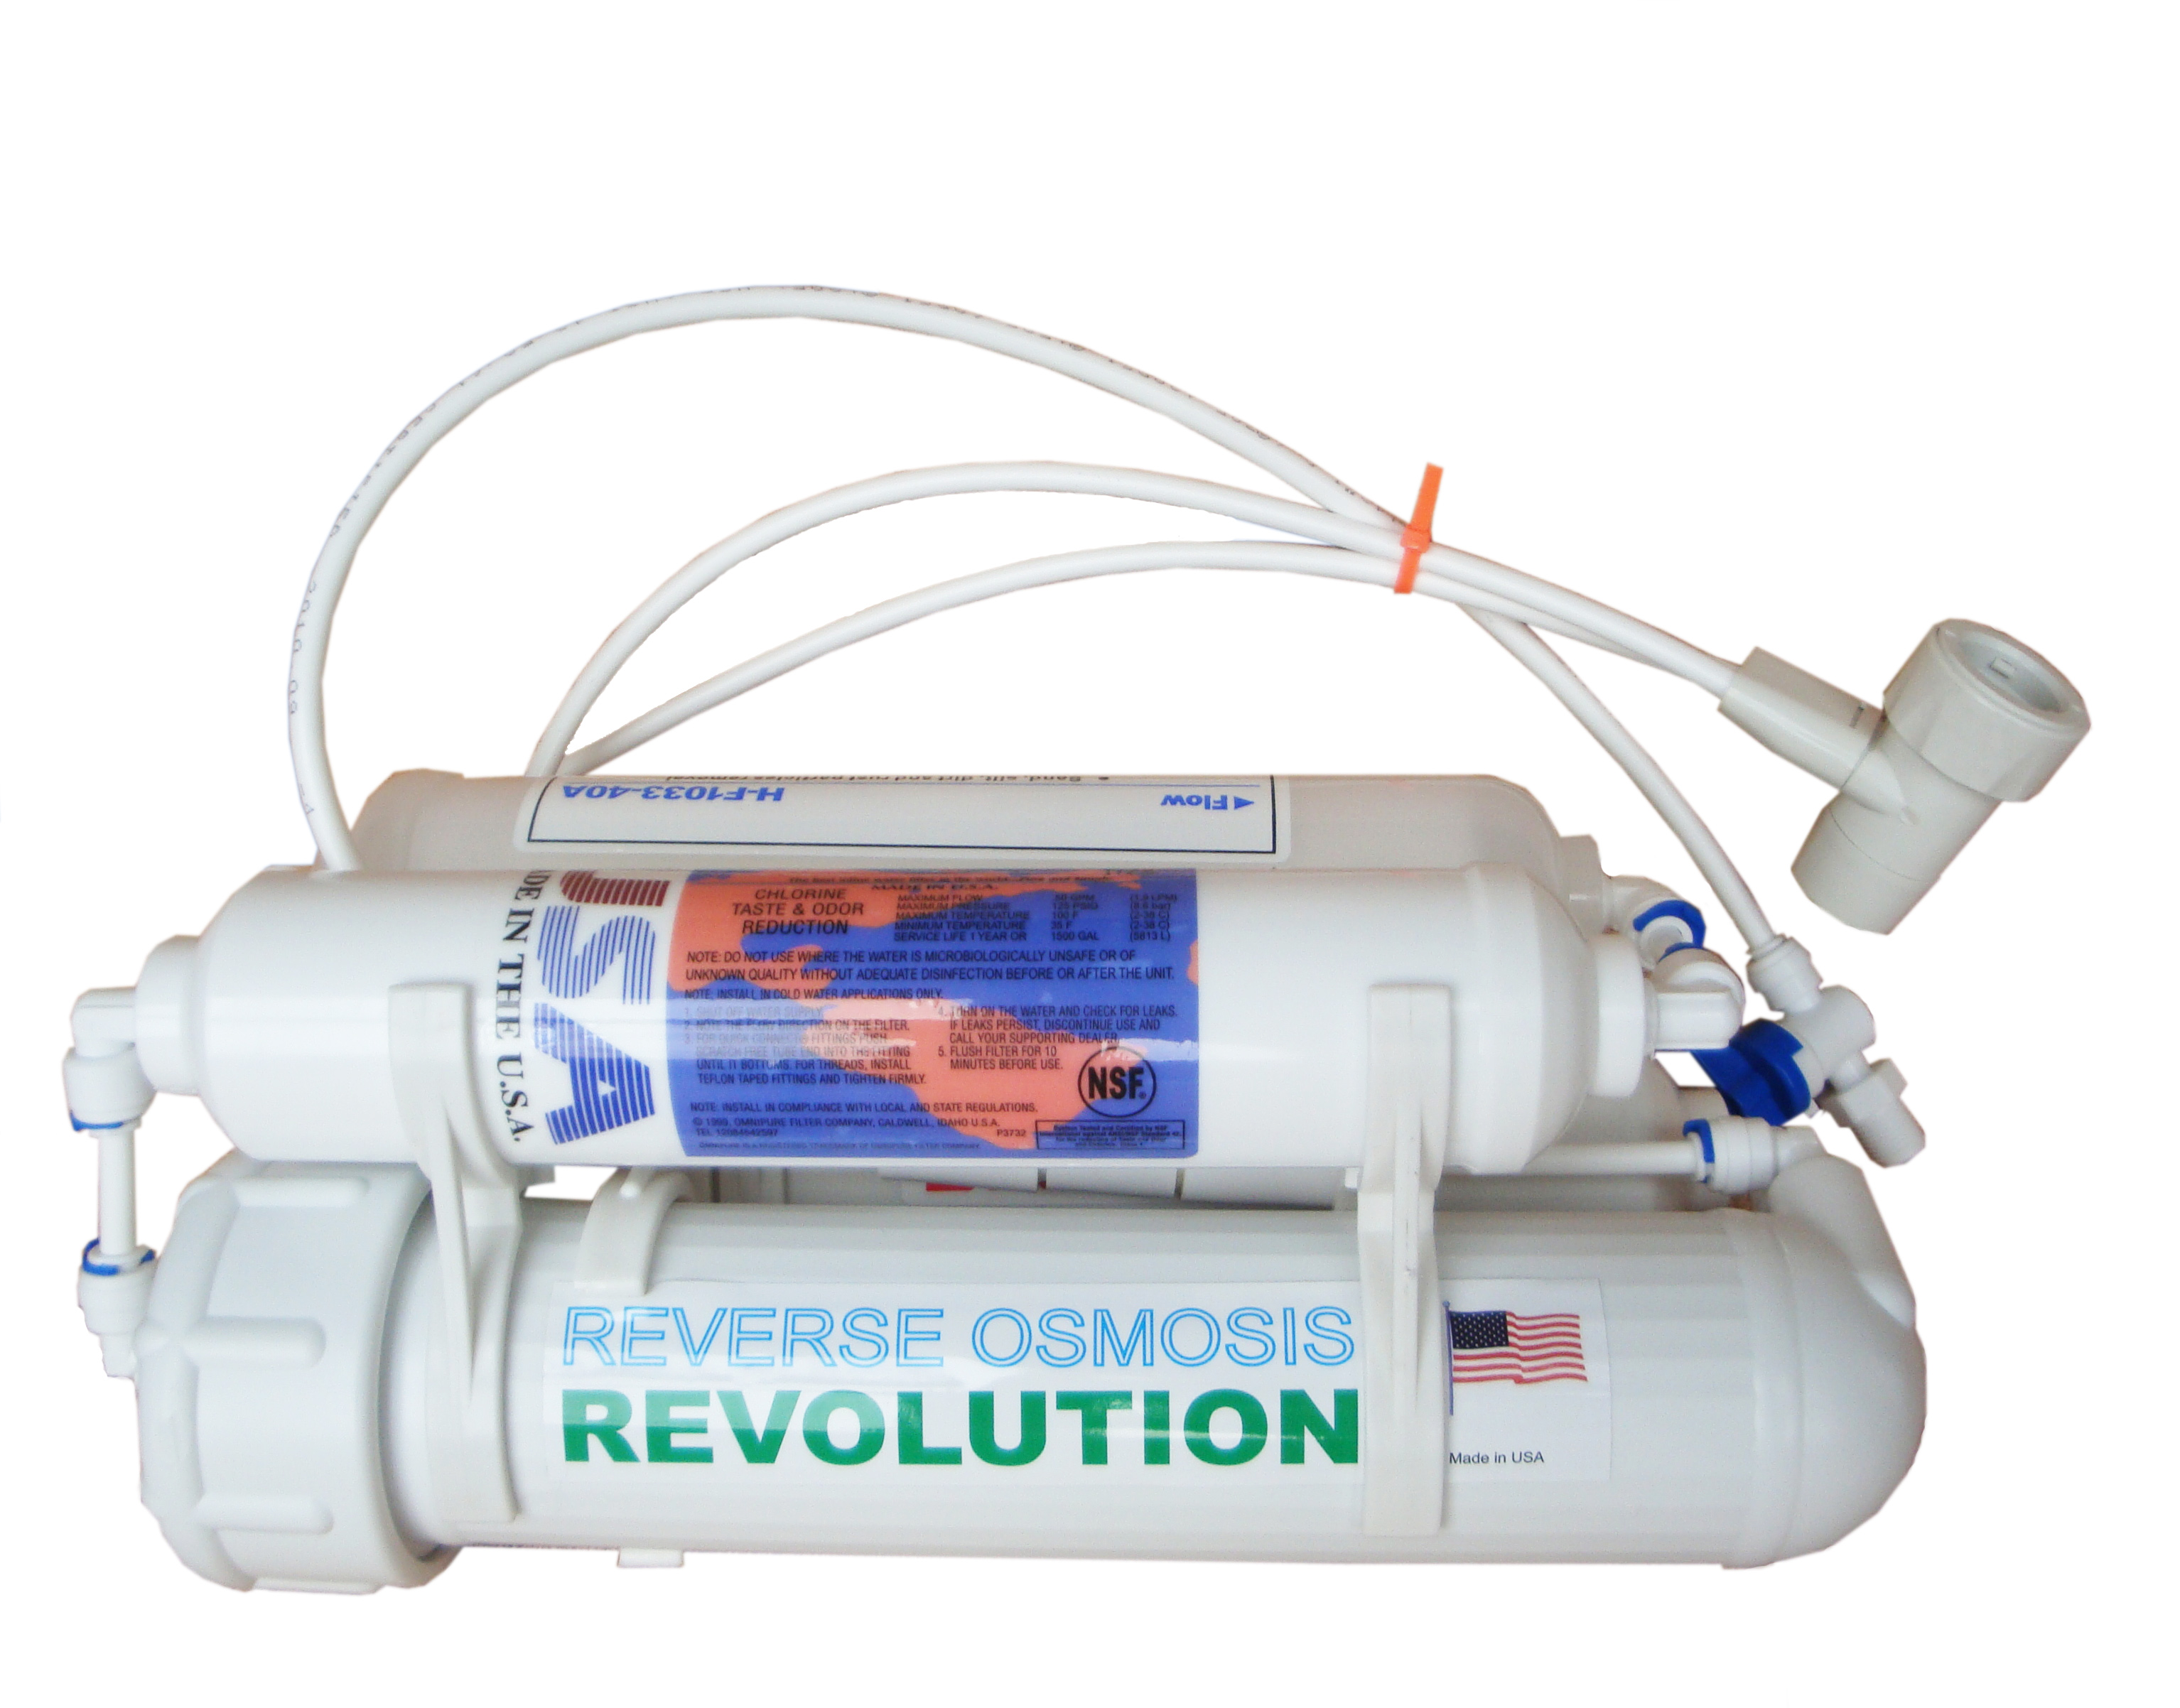 Aquarium 4 stage reverse osmosis revolution water for Fish filtration system